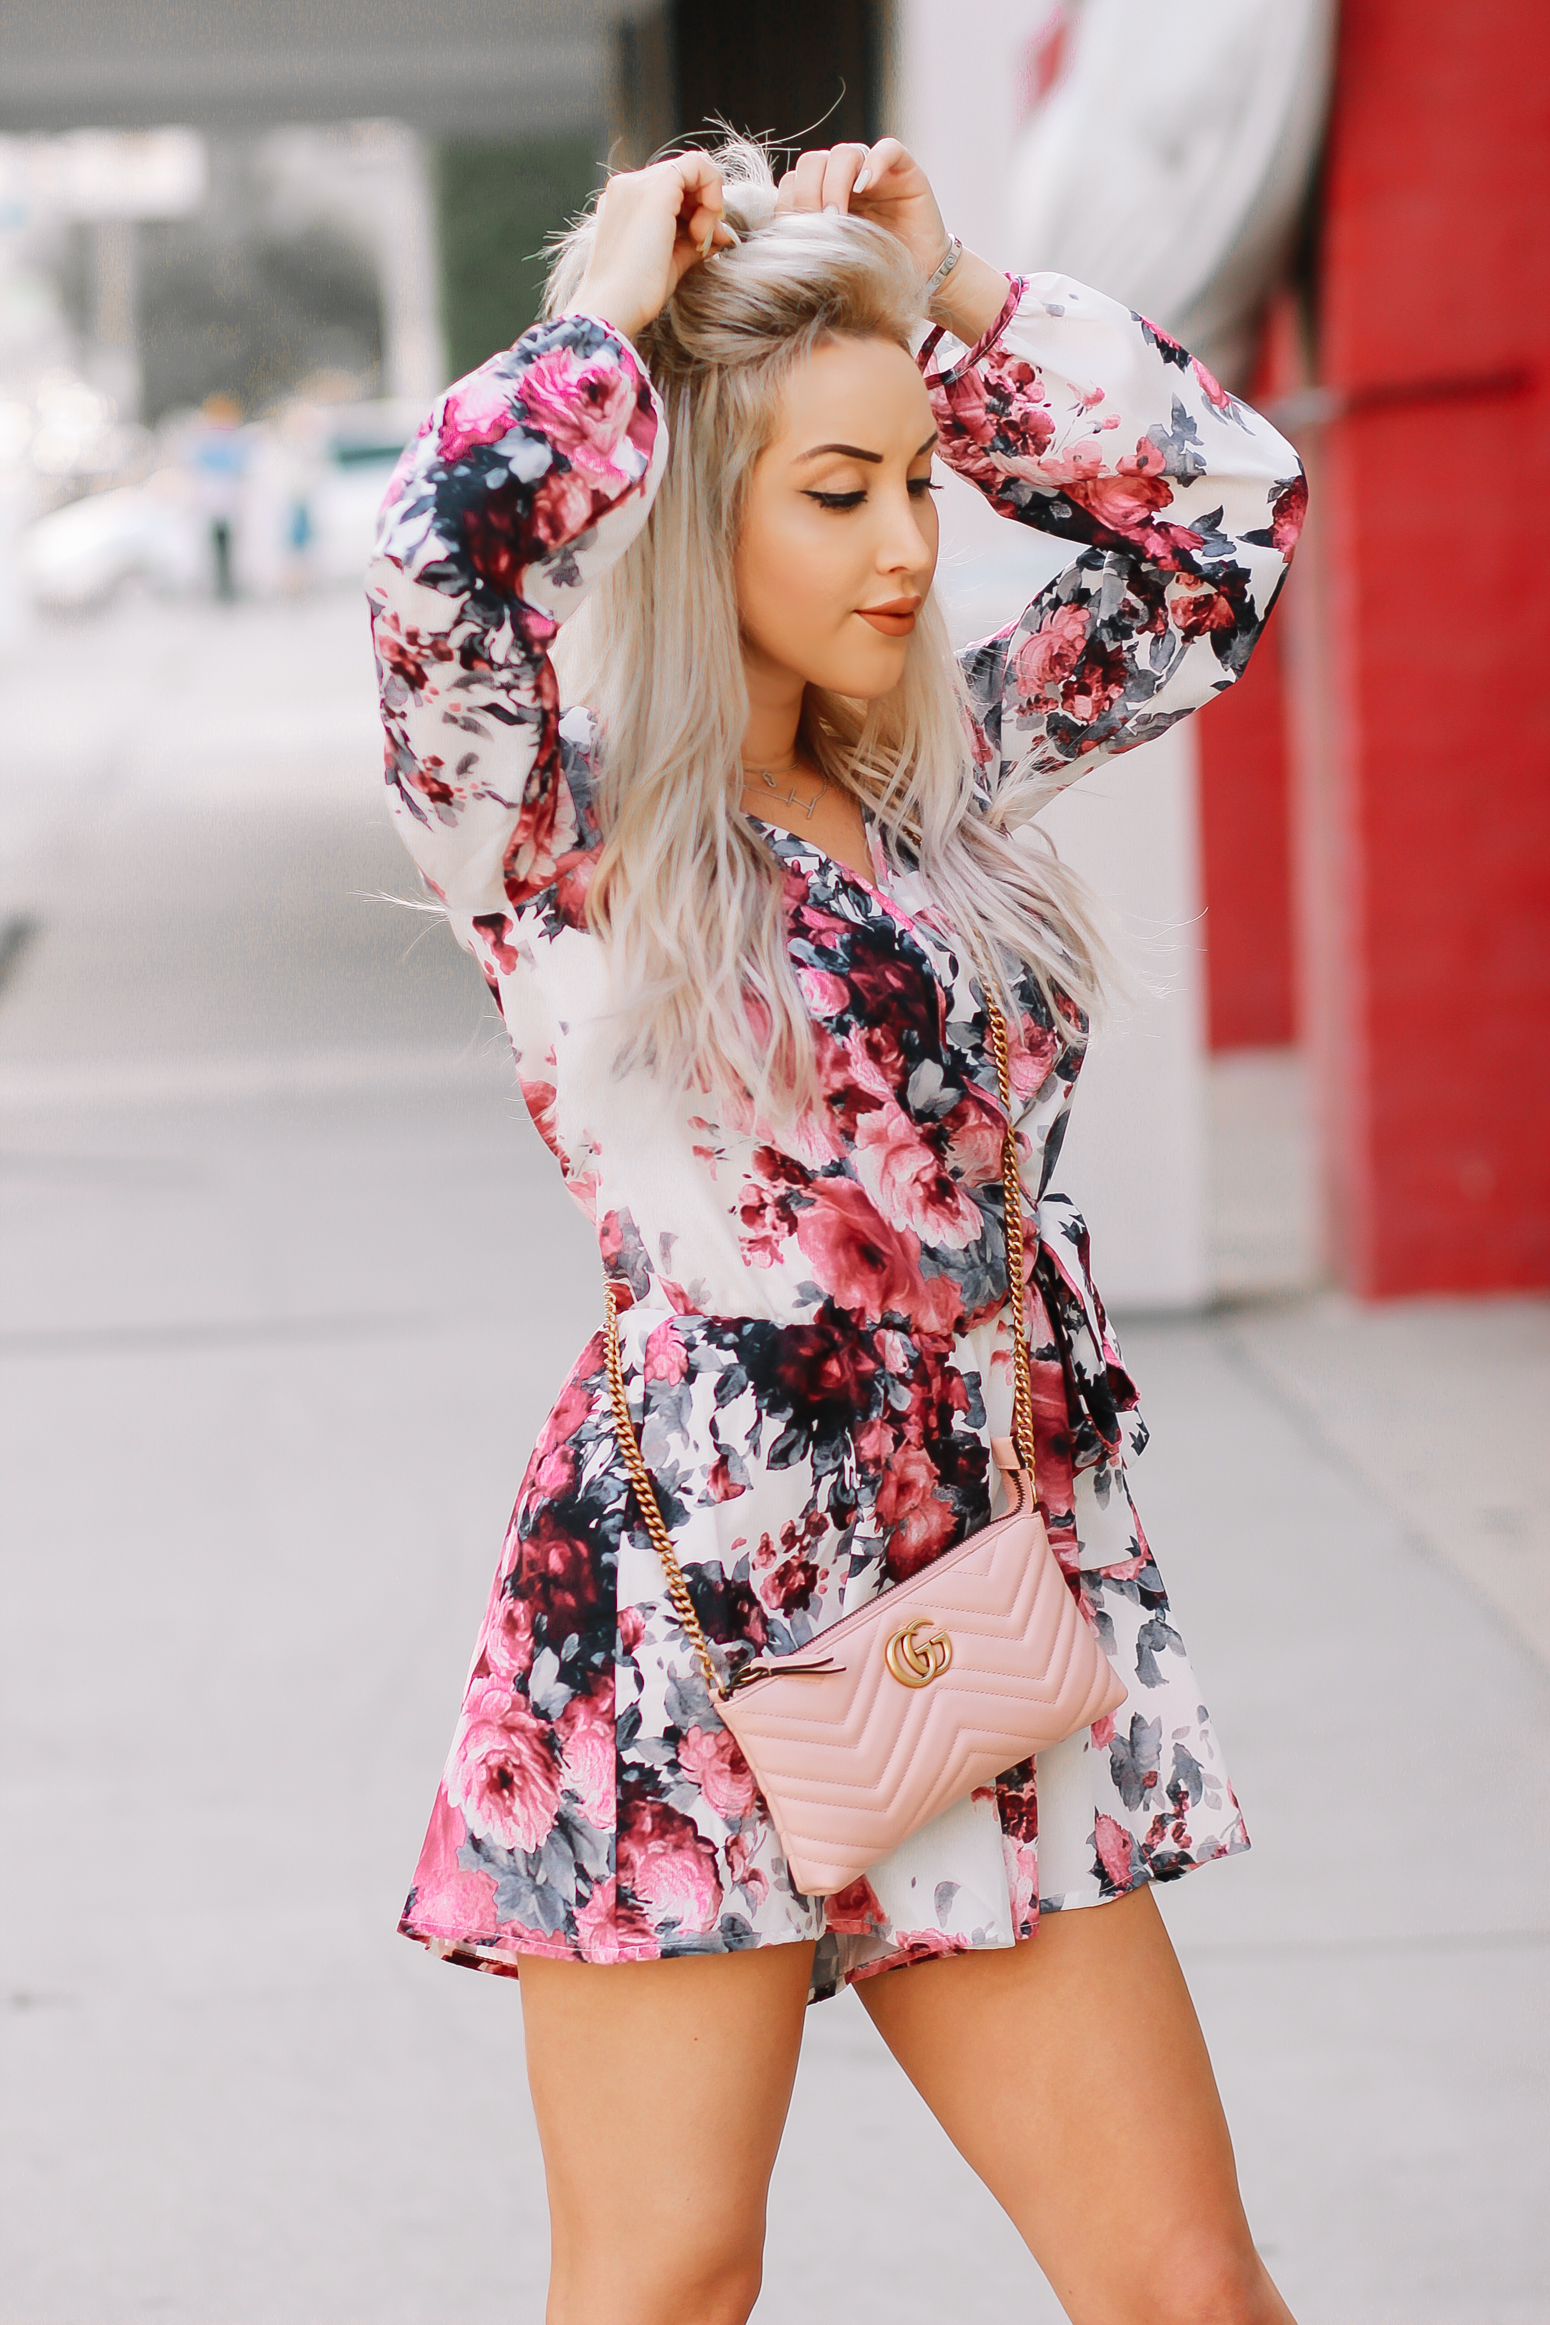 Blondie in the City | Pink Floral Summer Romper | Pink Gucci Bag